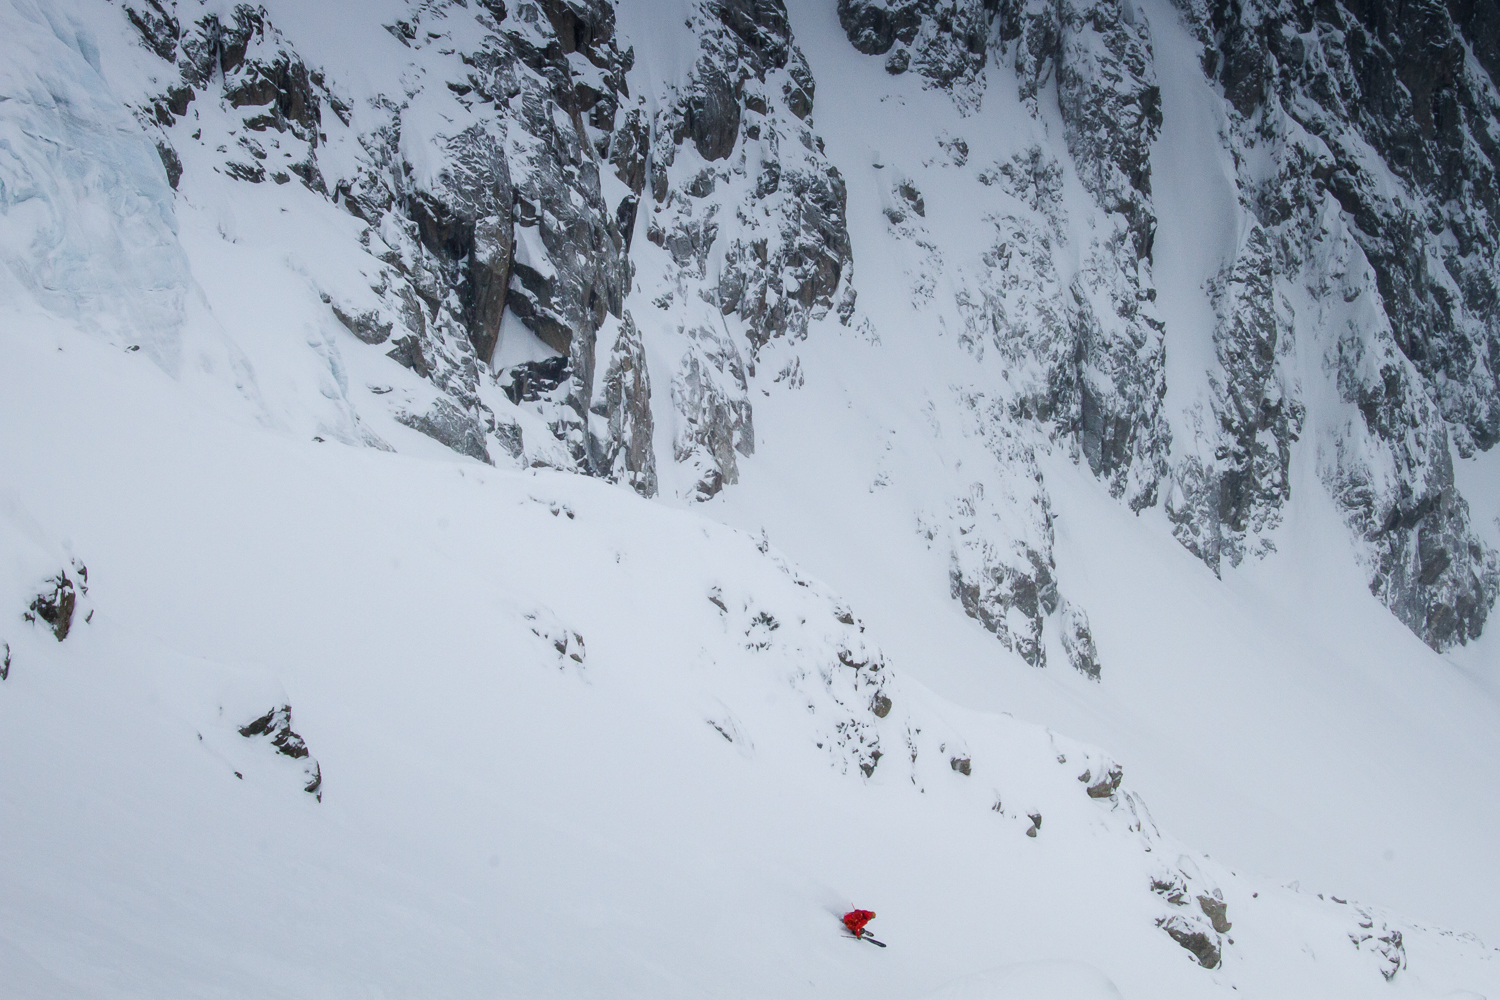 Forrest Coots traveling through France skiing La Grave and Chamonix.